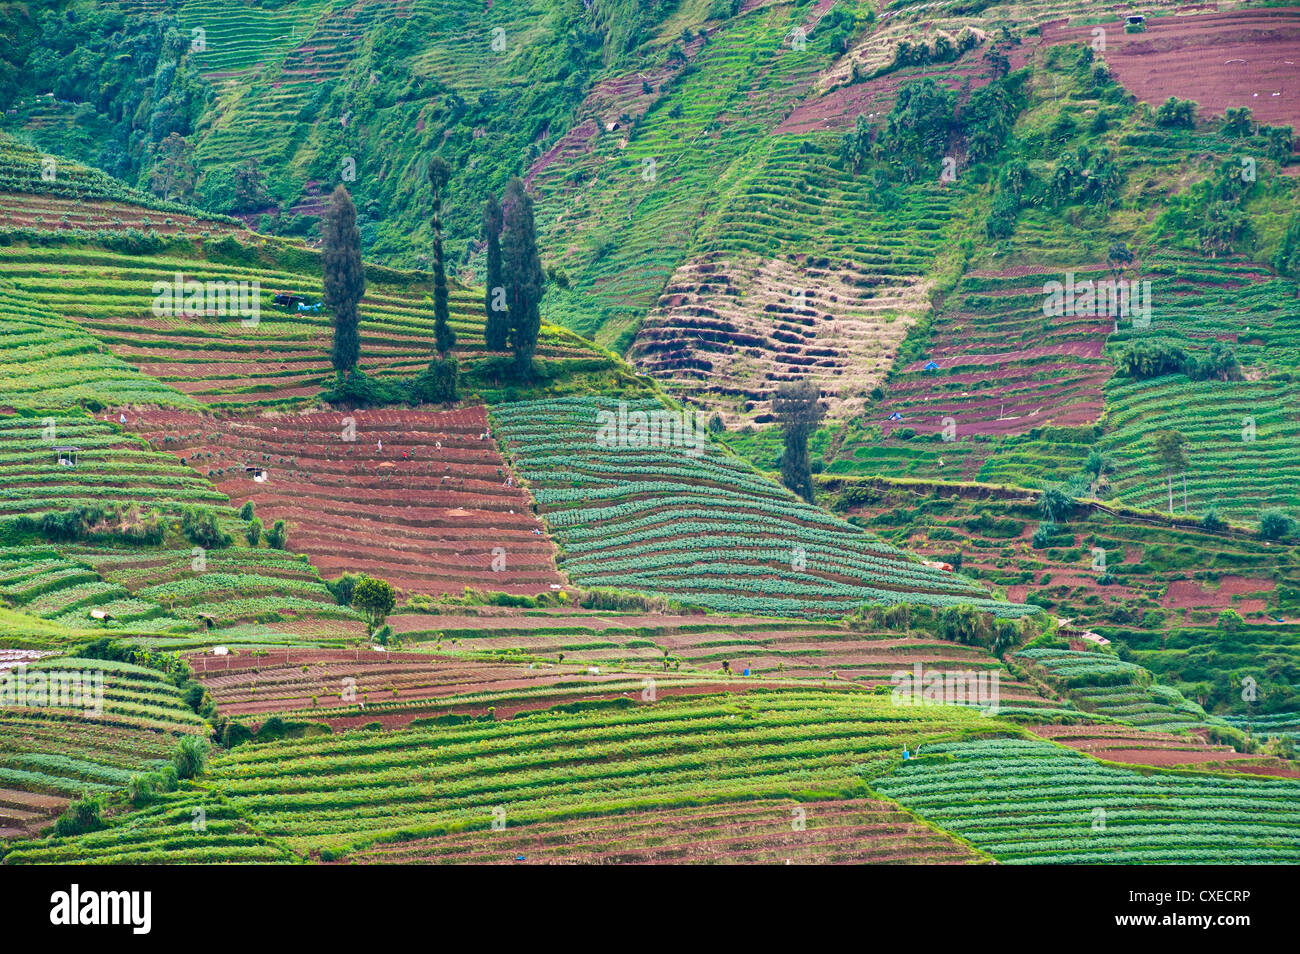 Vegetable fields at Wonosobo, Dieng Plateau, Central Java, Indonesia, Southeast Asia, Asia - Stock Image